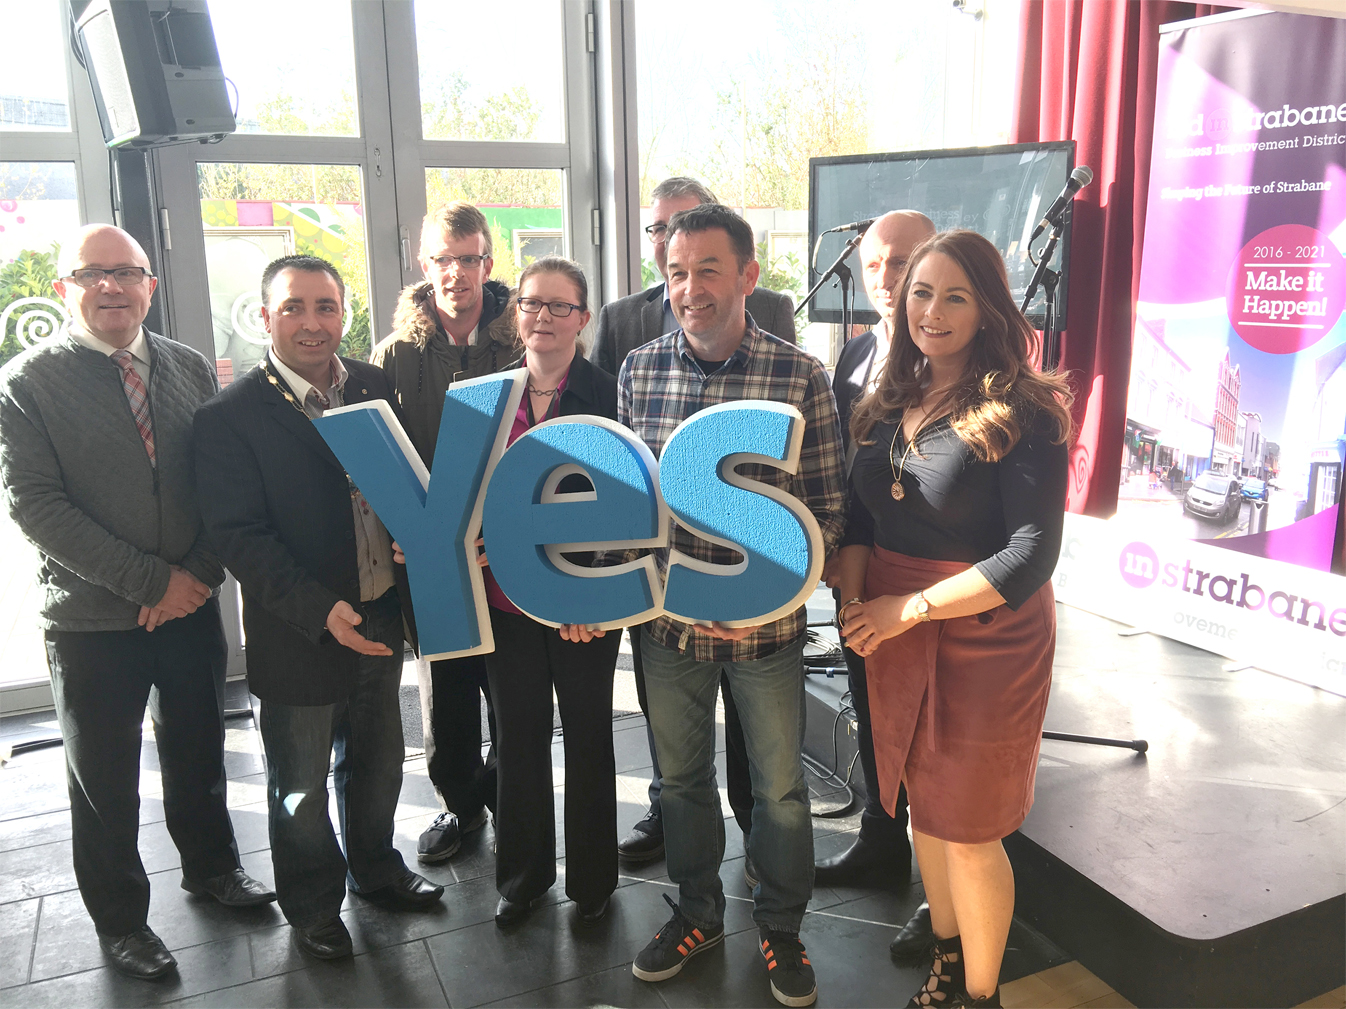 A Yes from Strabane